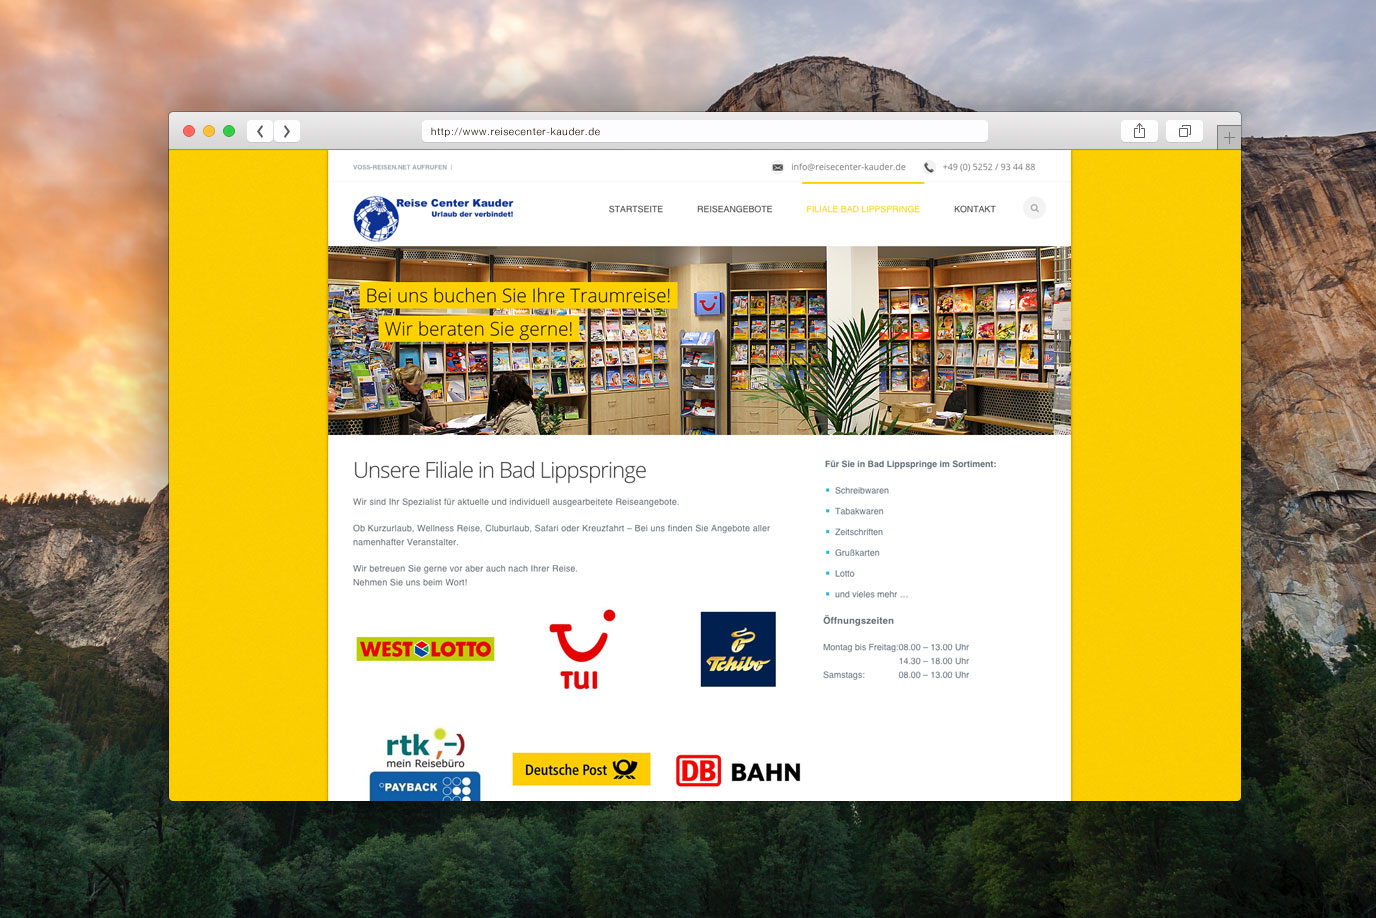 Webdesign Reisecenter Kauder in Paderborn